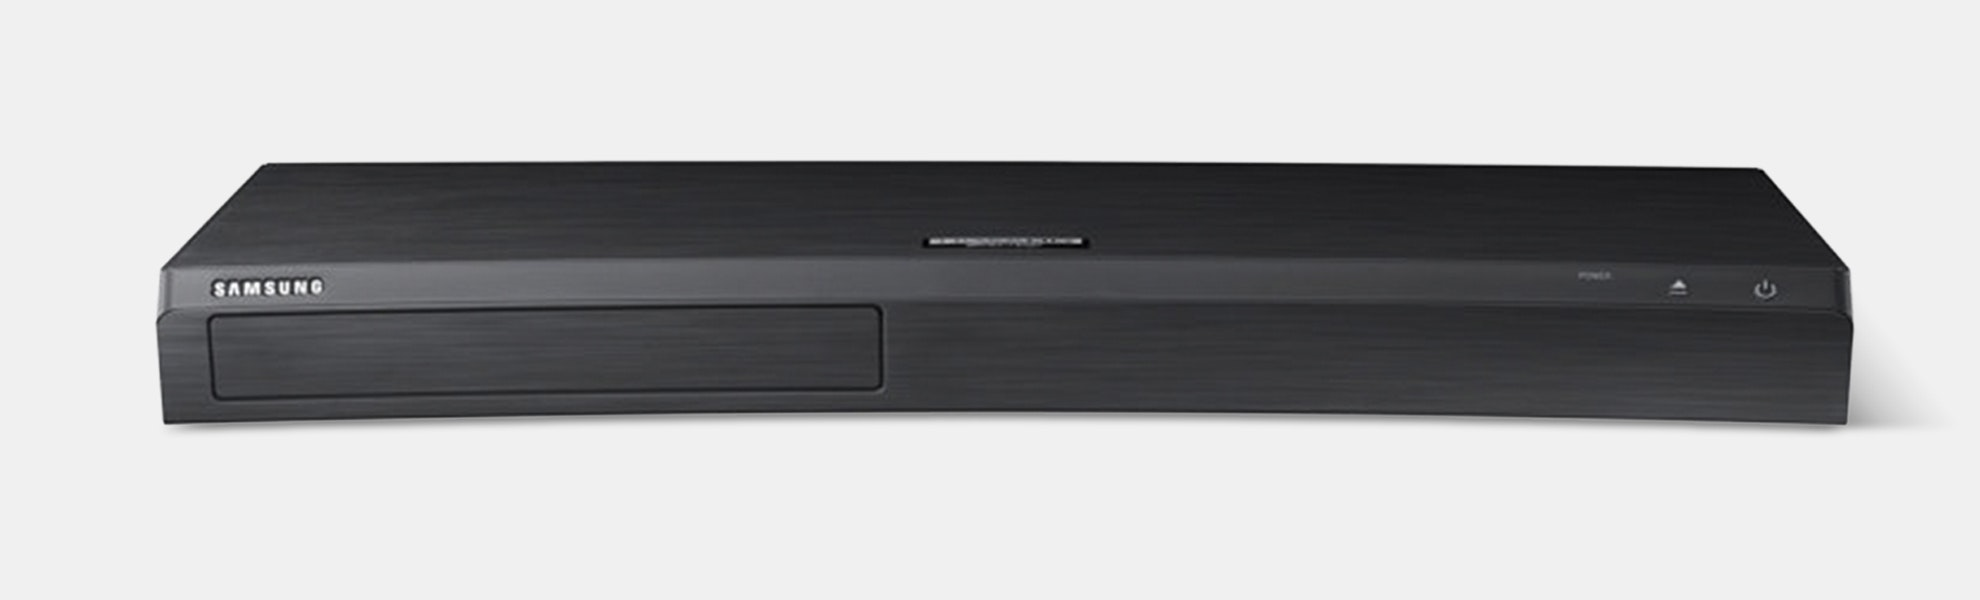 Samsung UBD-M9500 4K Ultra HD Blu-ray Player